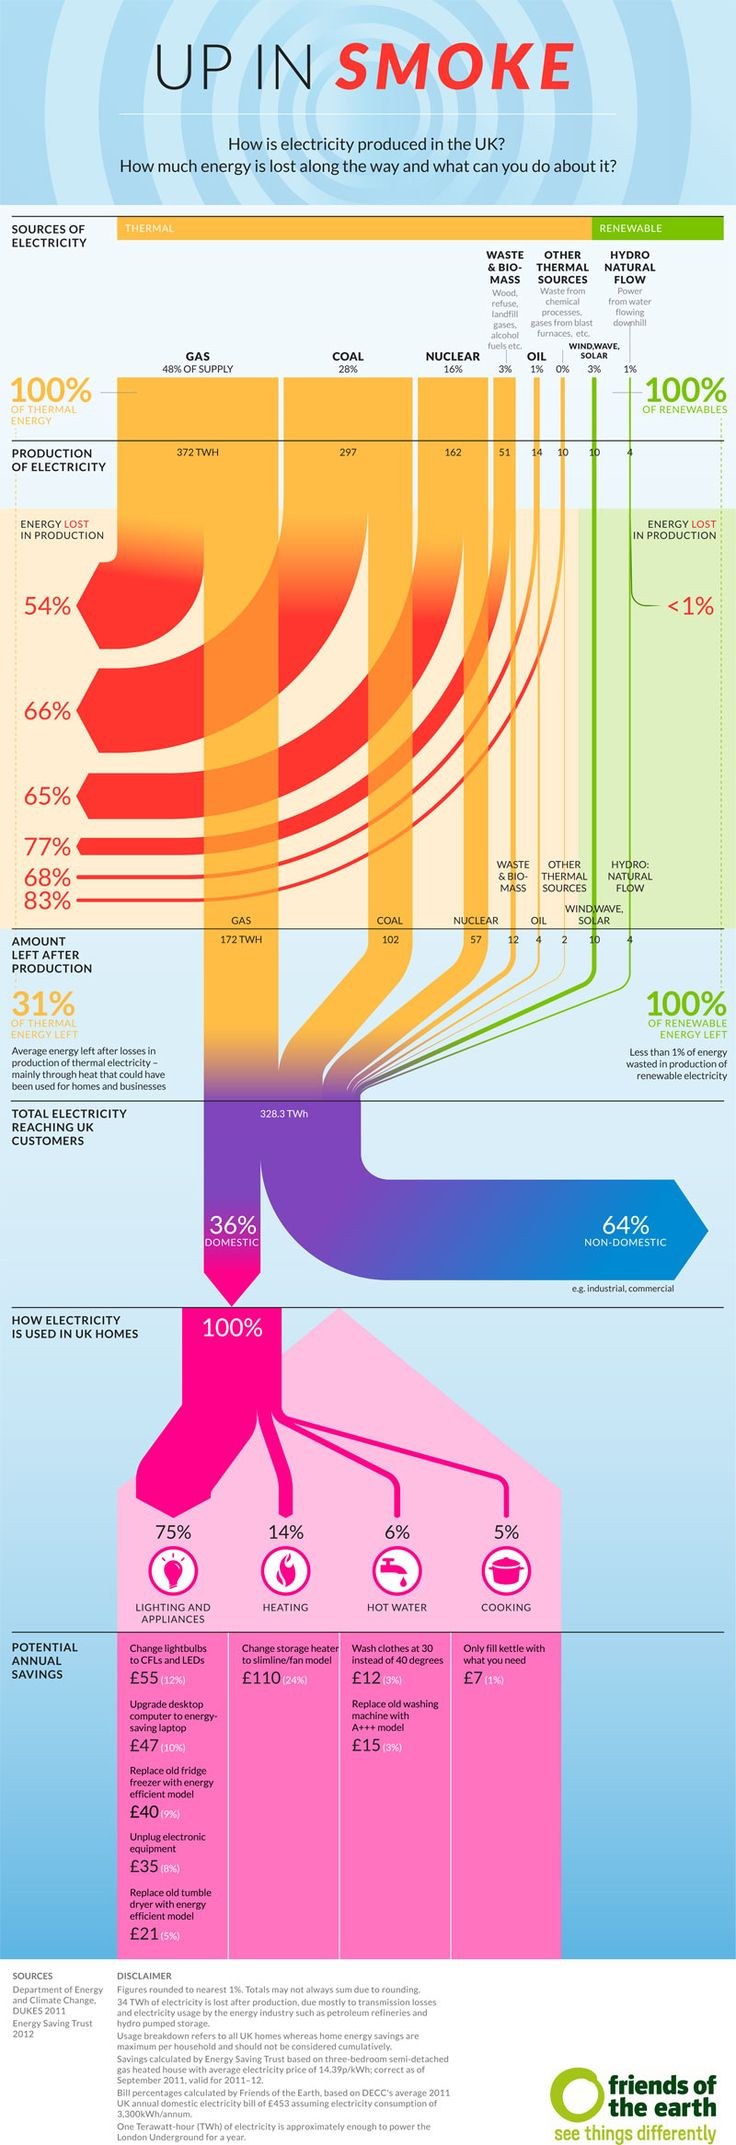 10 Best Tech Interest Images On Pinterest Solar Energy Sankey Diagram For A Highly Efficient Wind Generator Source Up In Smoke How Is Electricity Produced The Uk Renewable Sources Of Energyup